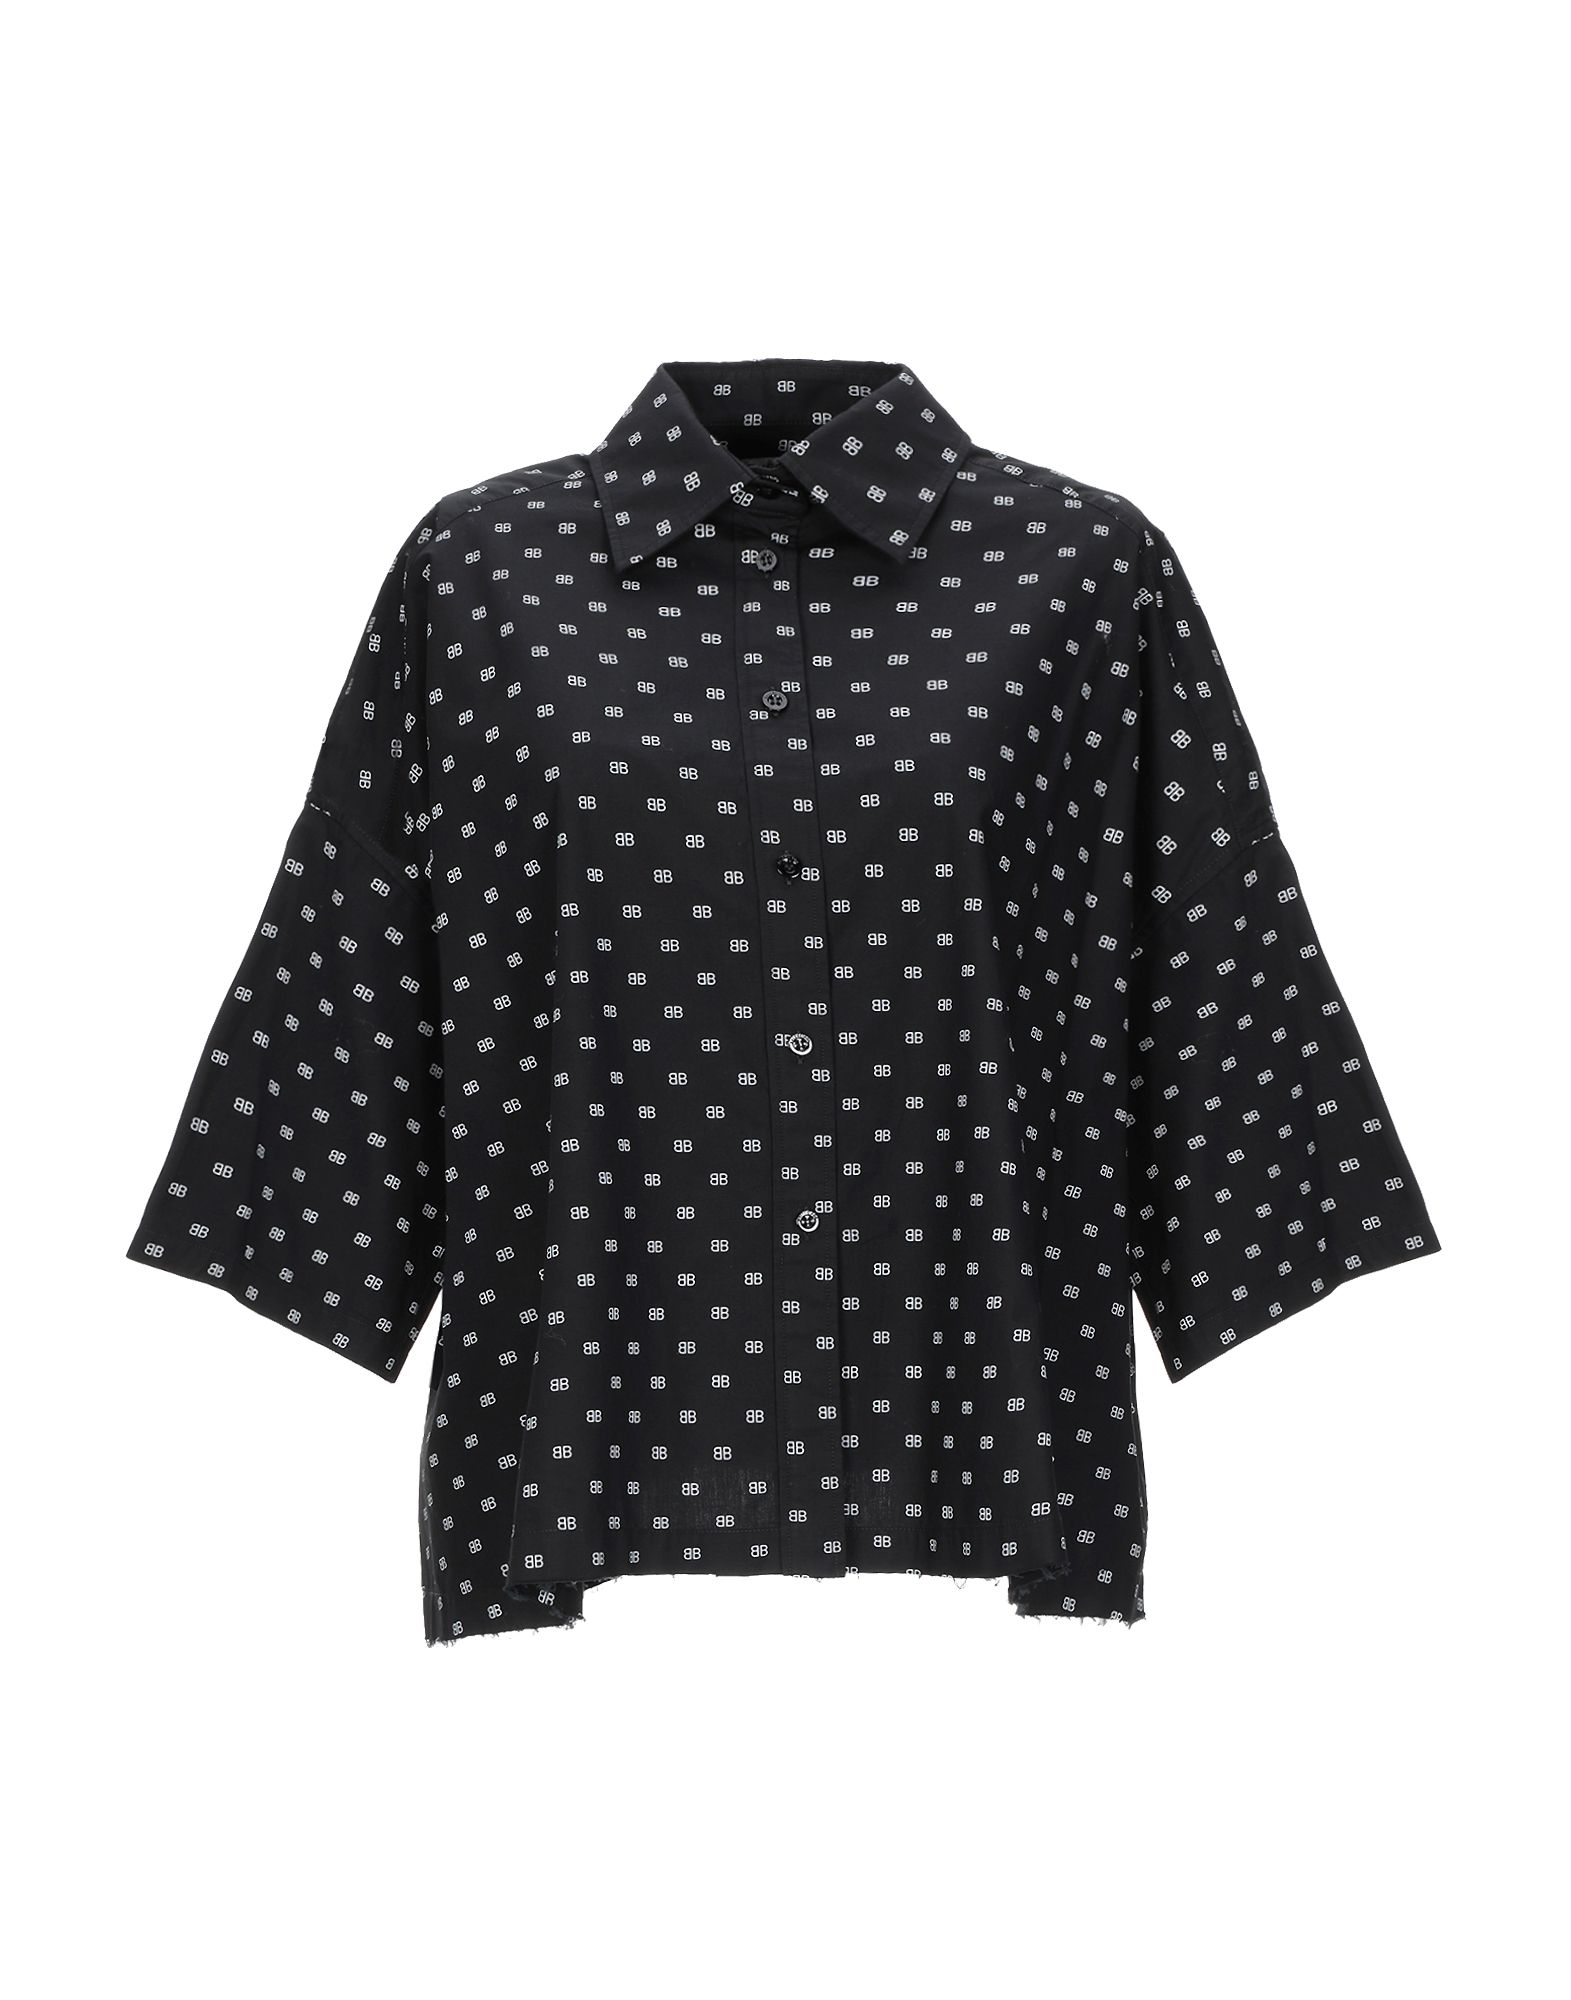 BALENCIAGA Shirts - Item 38870805